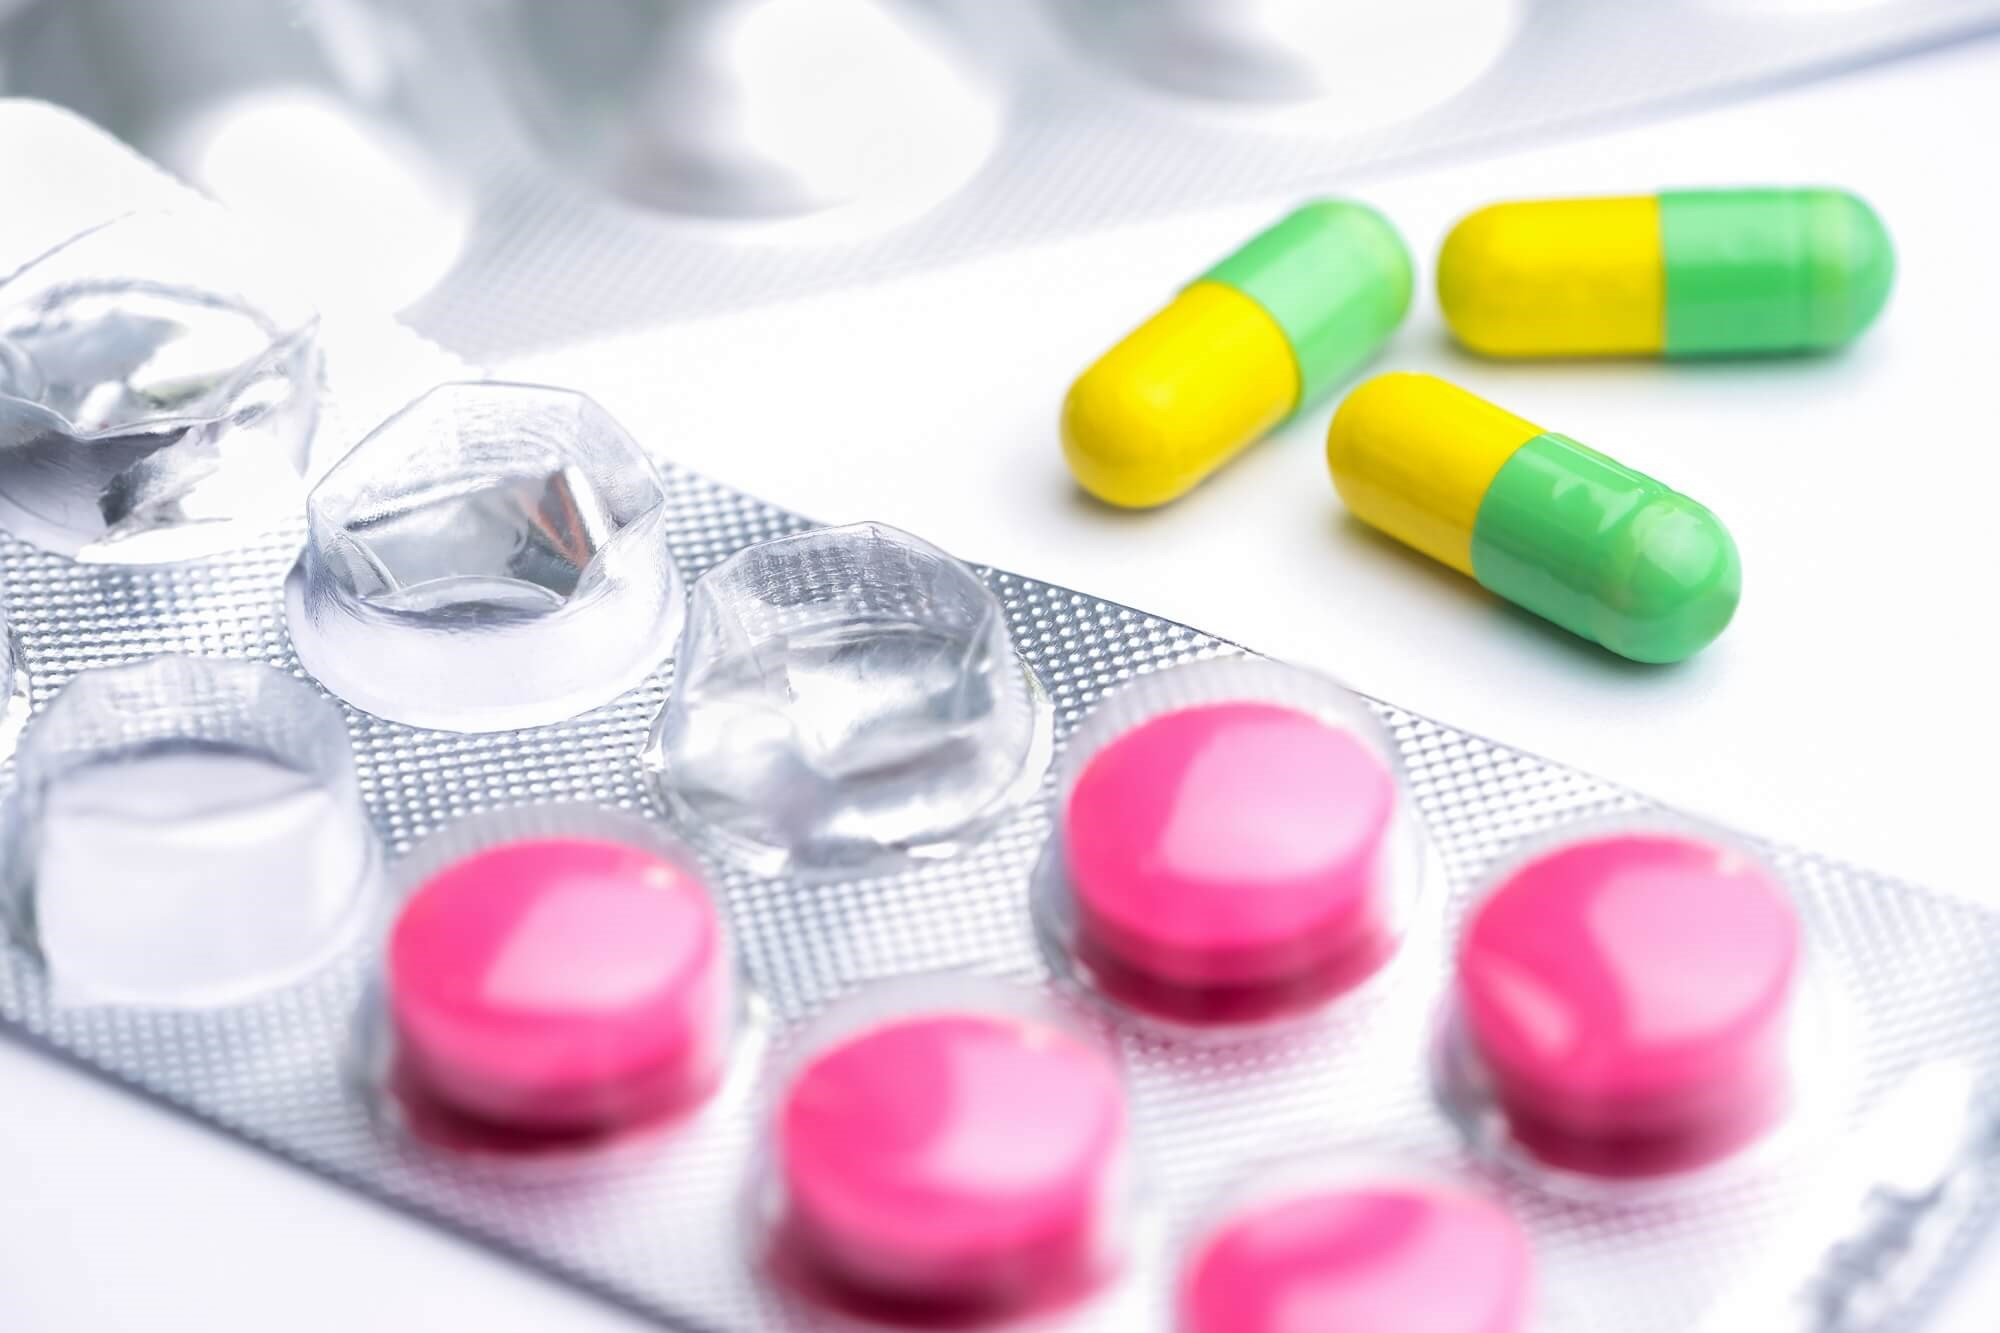 Medication Errors Resulting in Death Most Common in Elderly